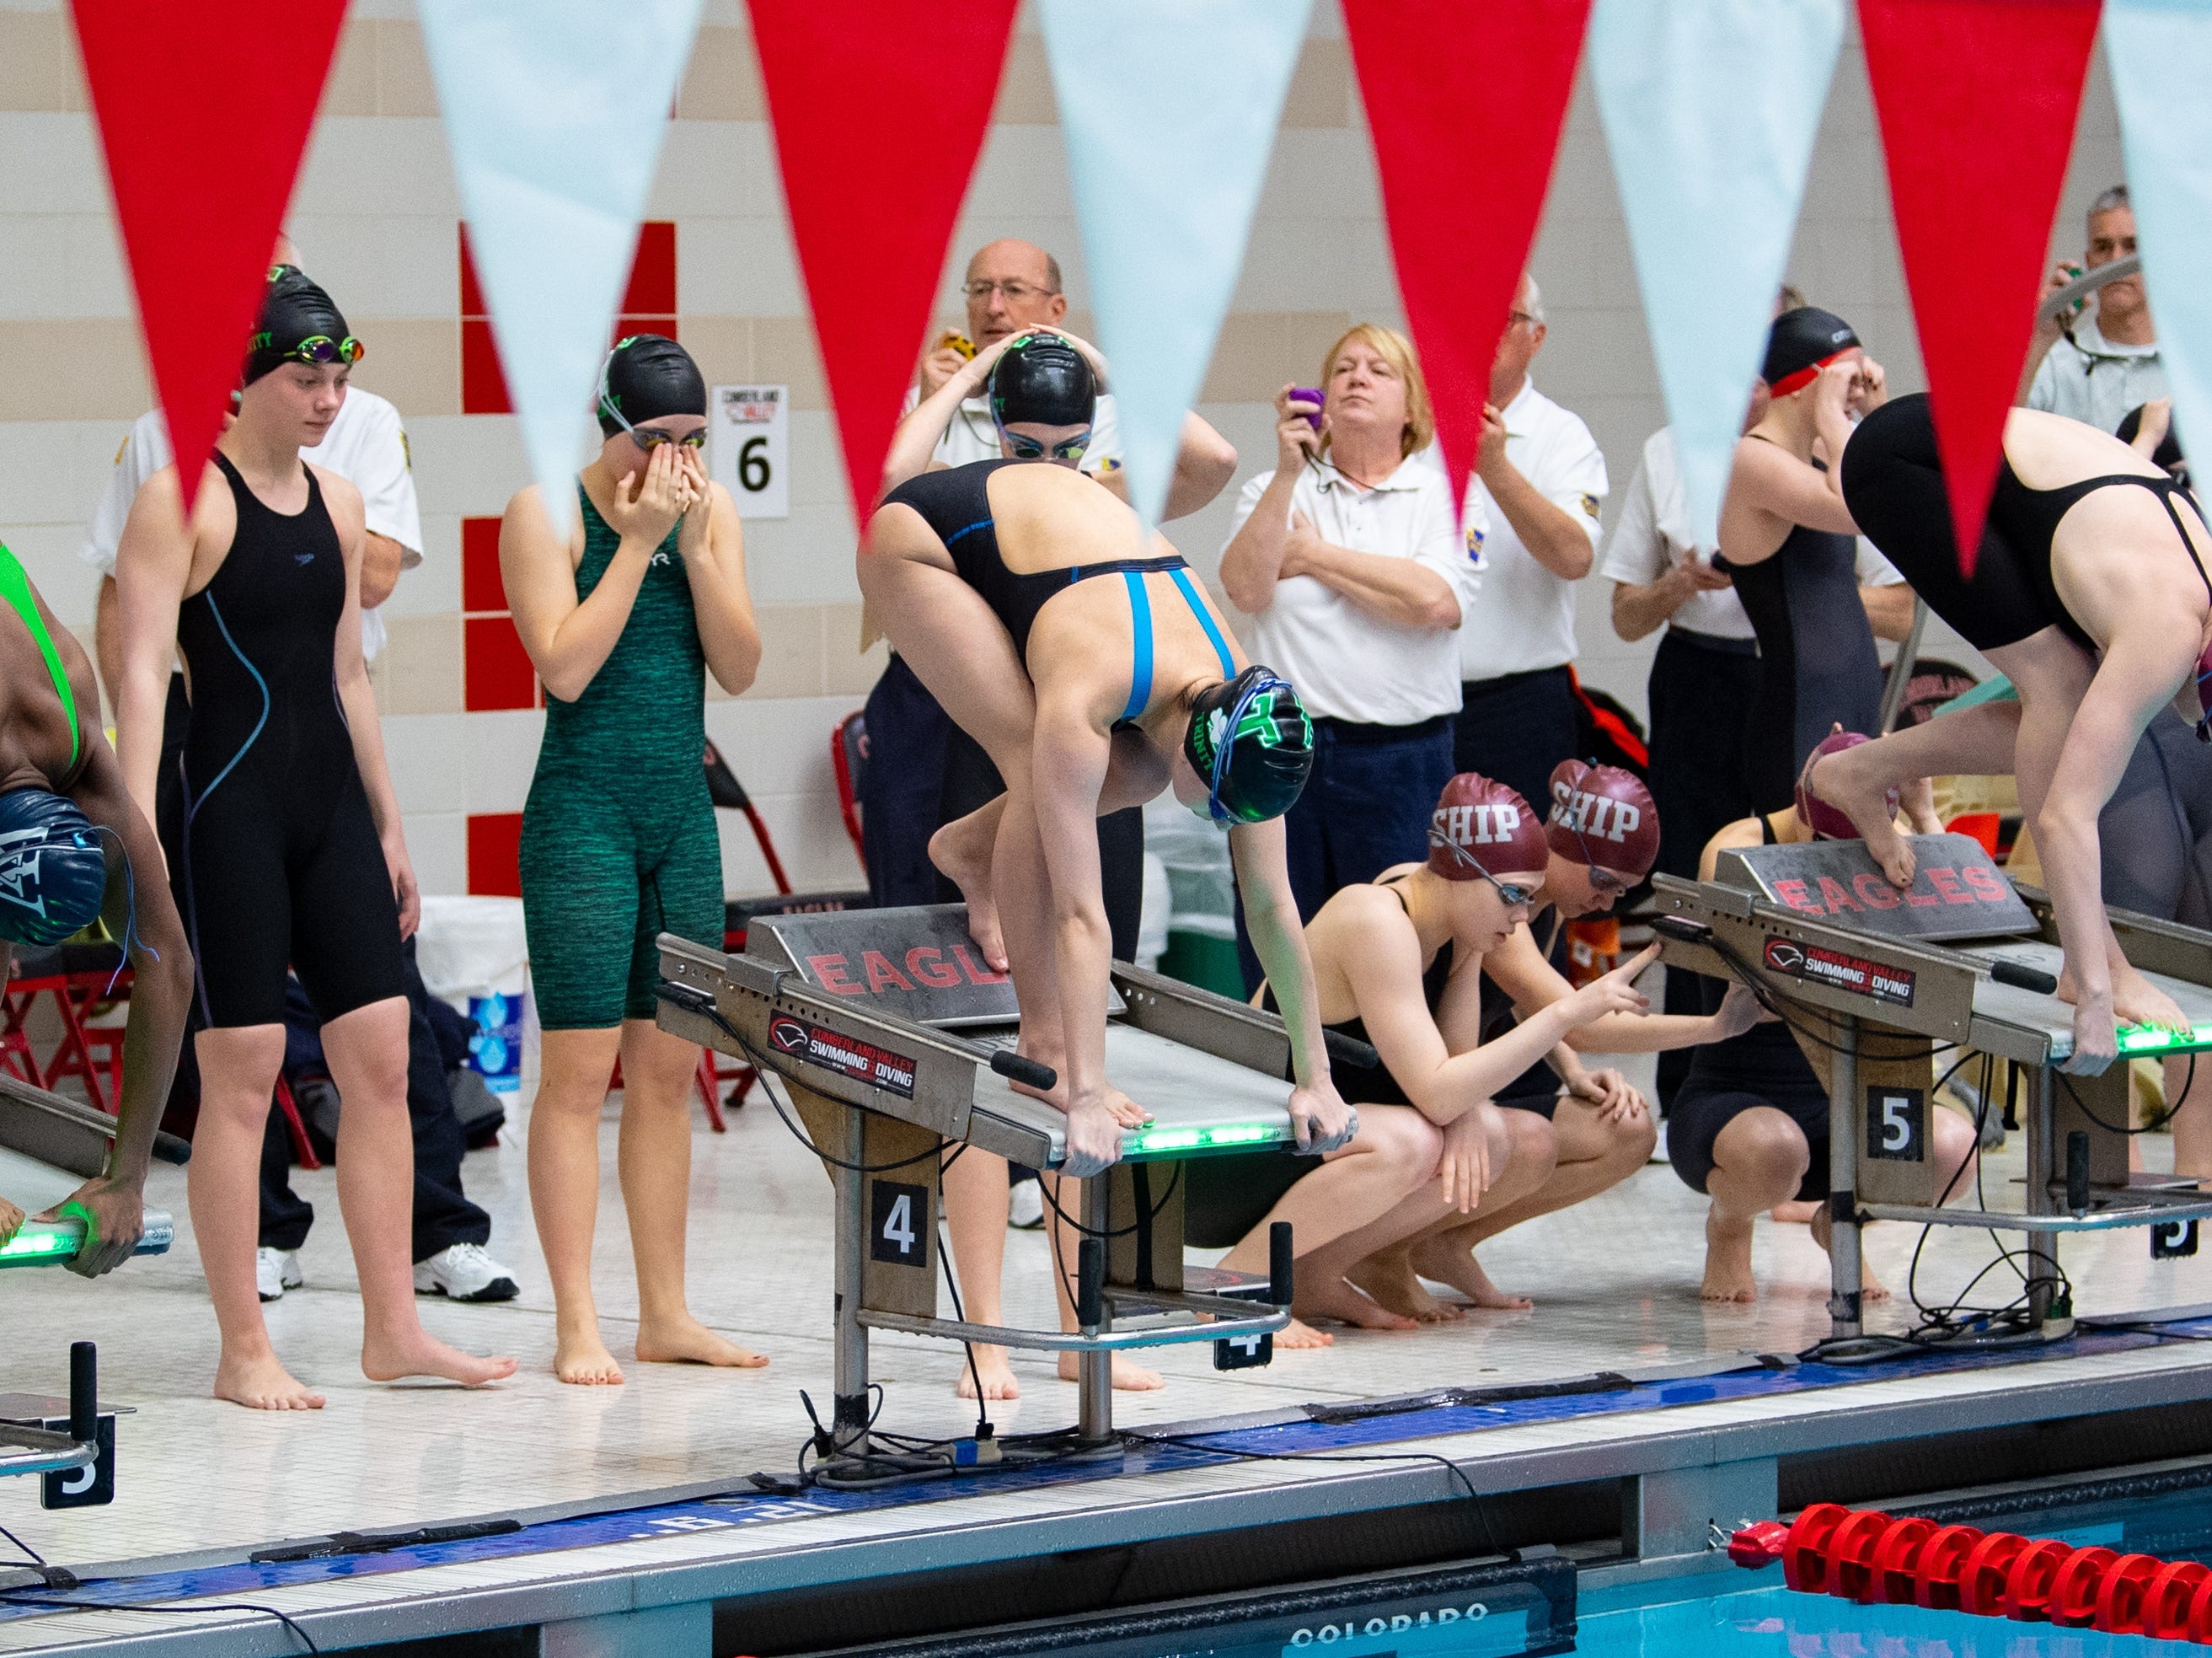 The second heat of the Girls 200 Yard Freestyle Relay is about to begin during the PIAA District 3 Girls AA Championship, March 1, 2019 at Cumberland Valley High School.